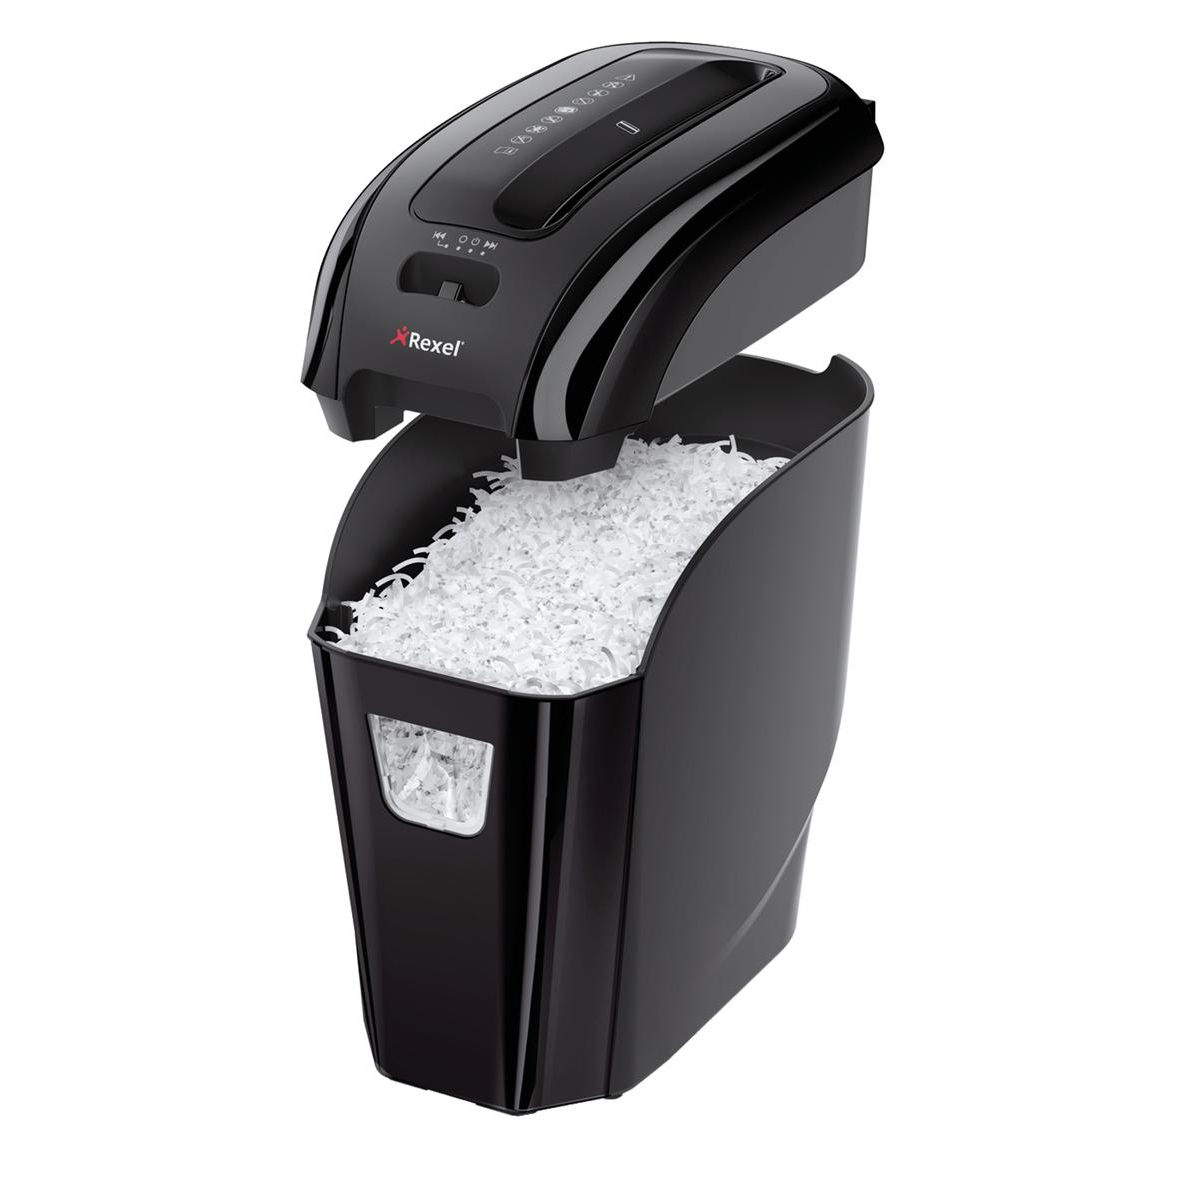 Rexel Prostyle Plus 7 Shredder Cross-cut P-4 12 Litre Capacity Ref 2104007